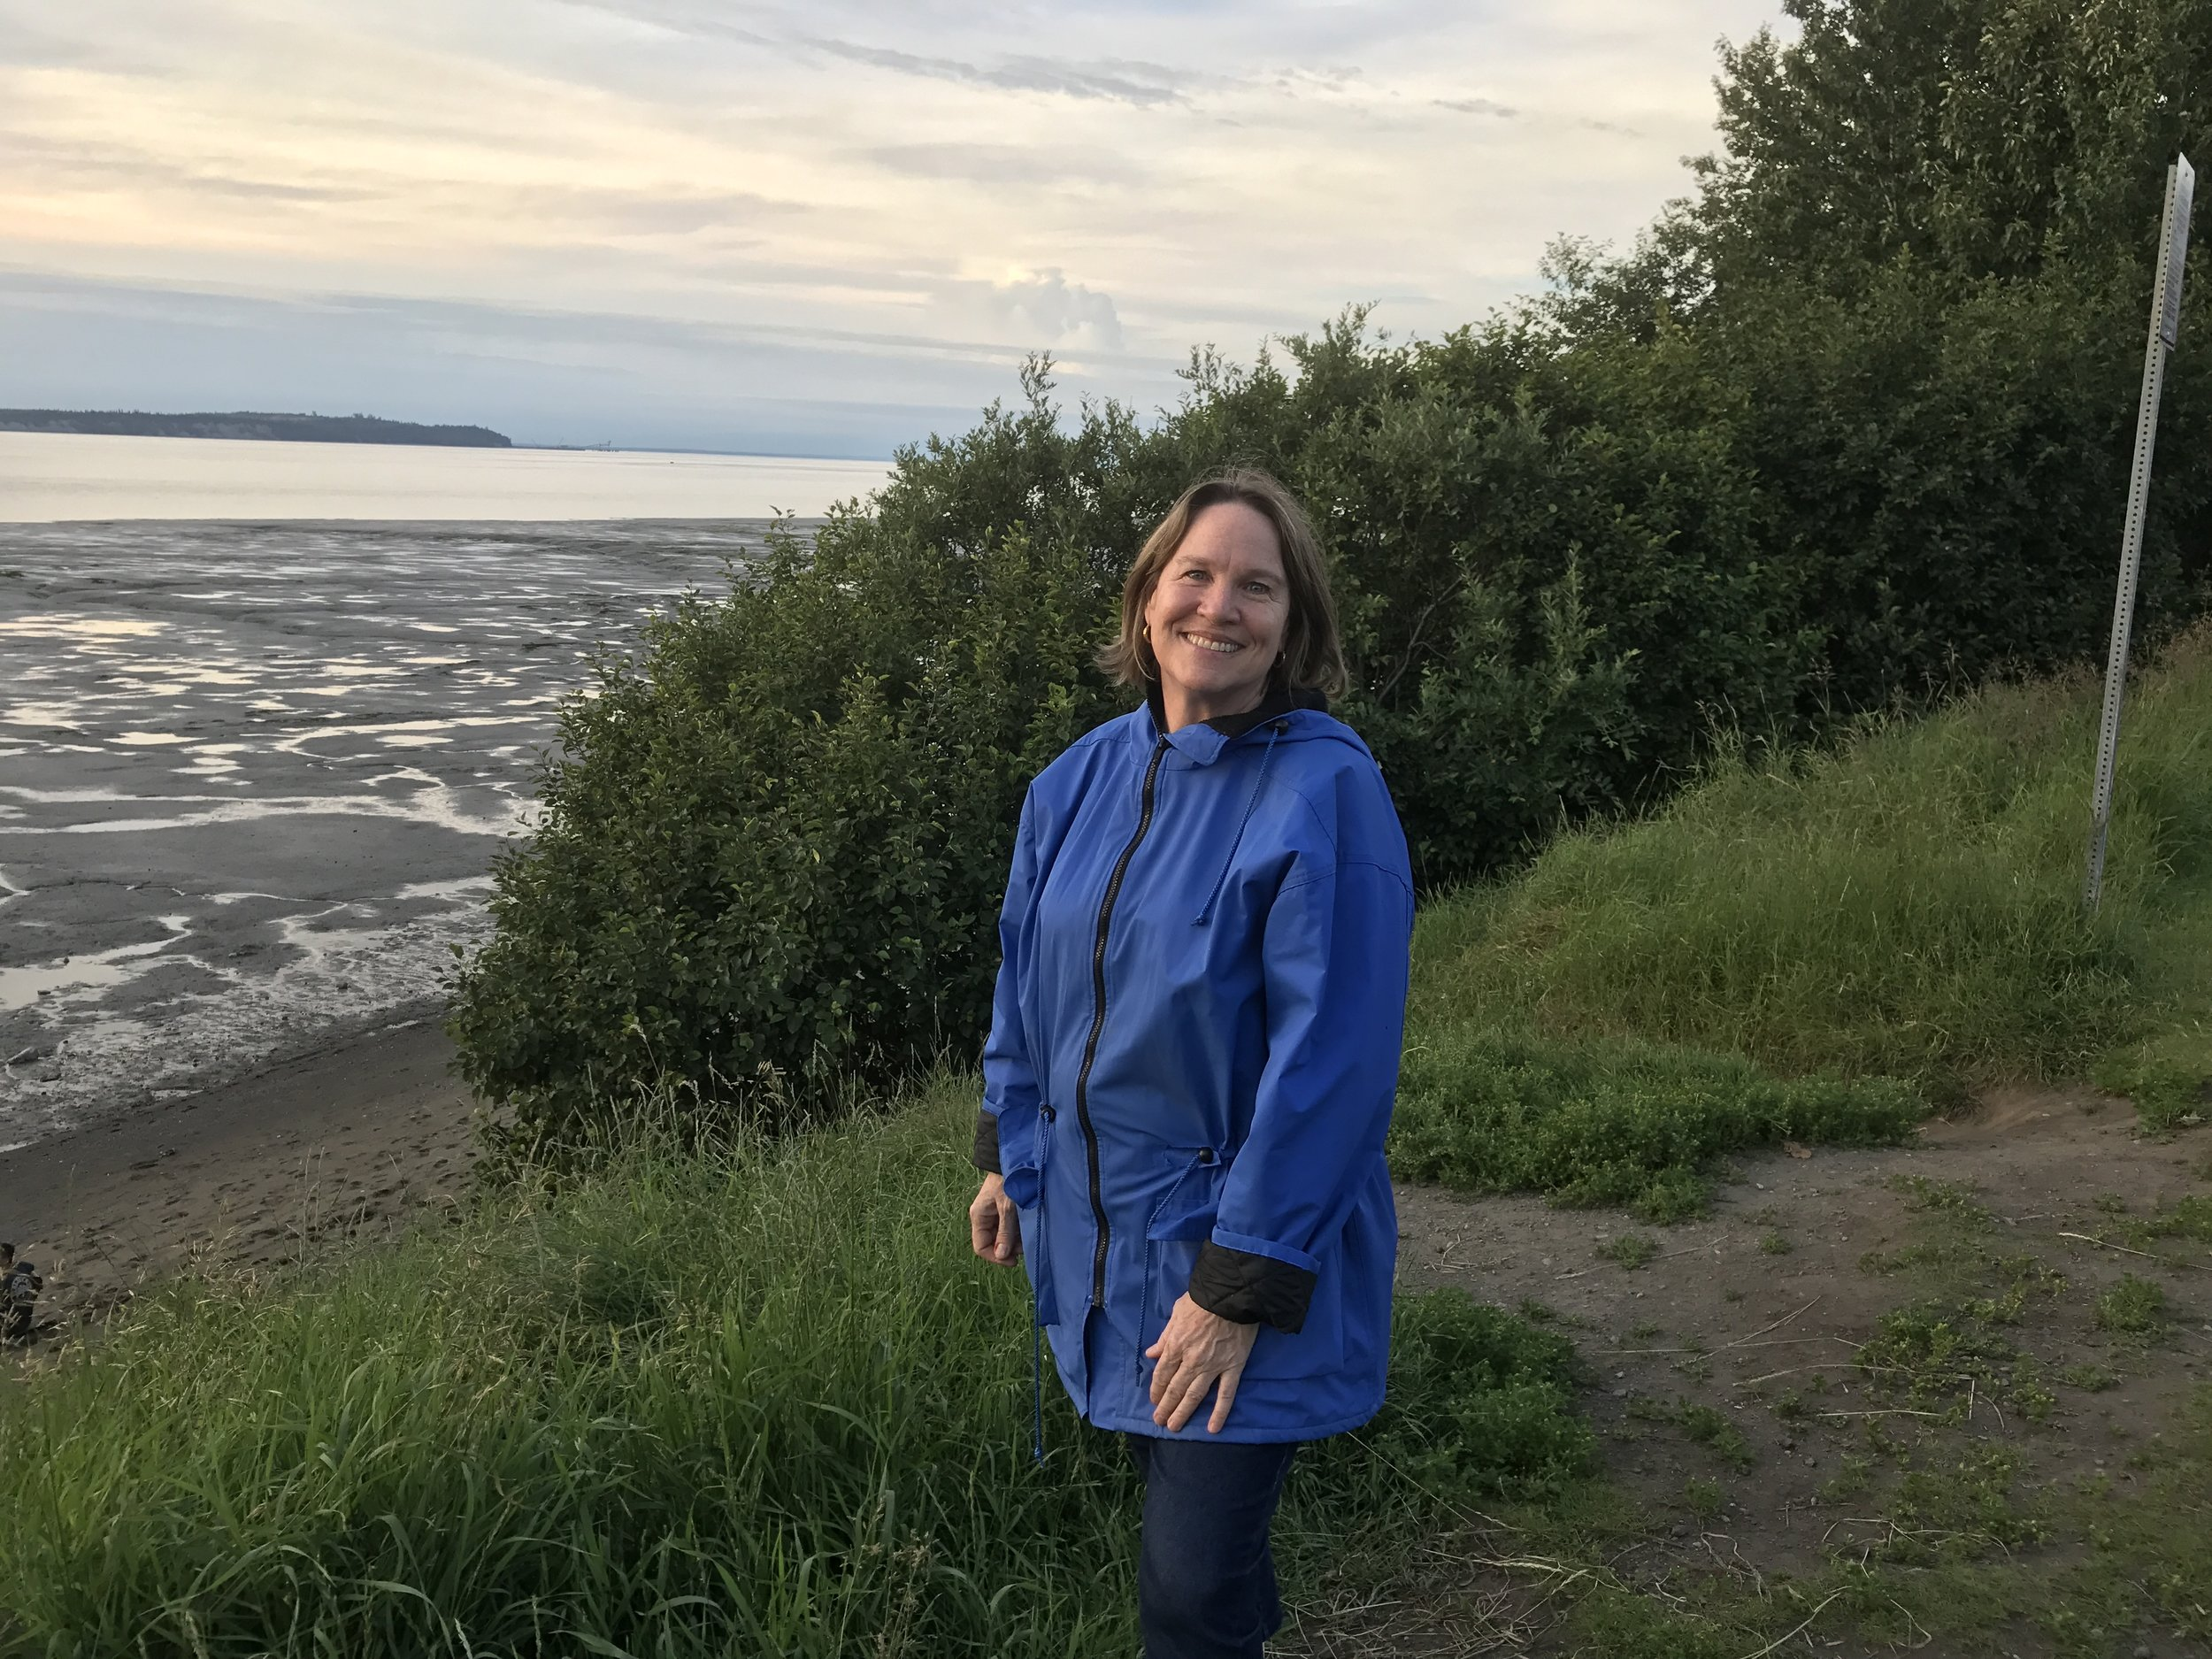 Hiking with Keri along the Cook Inlet.